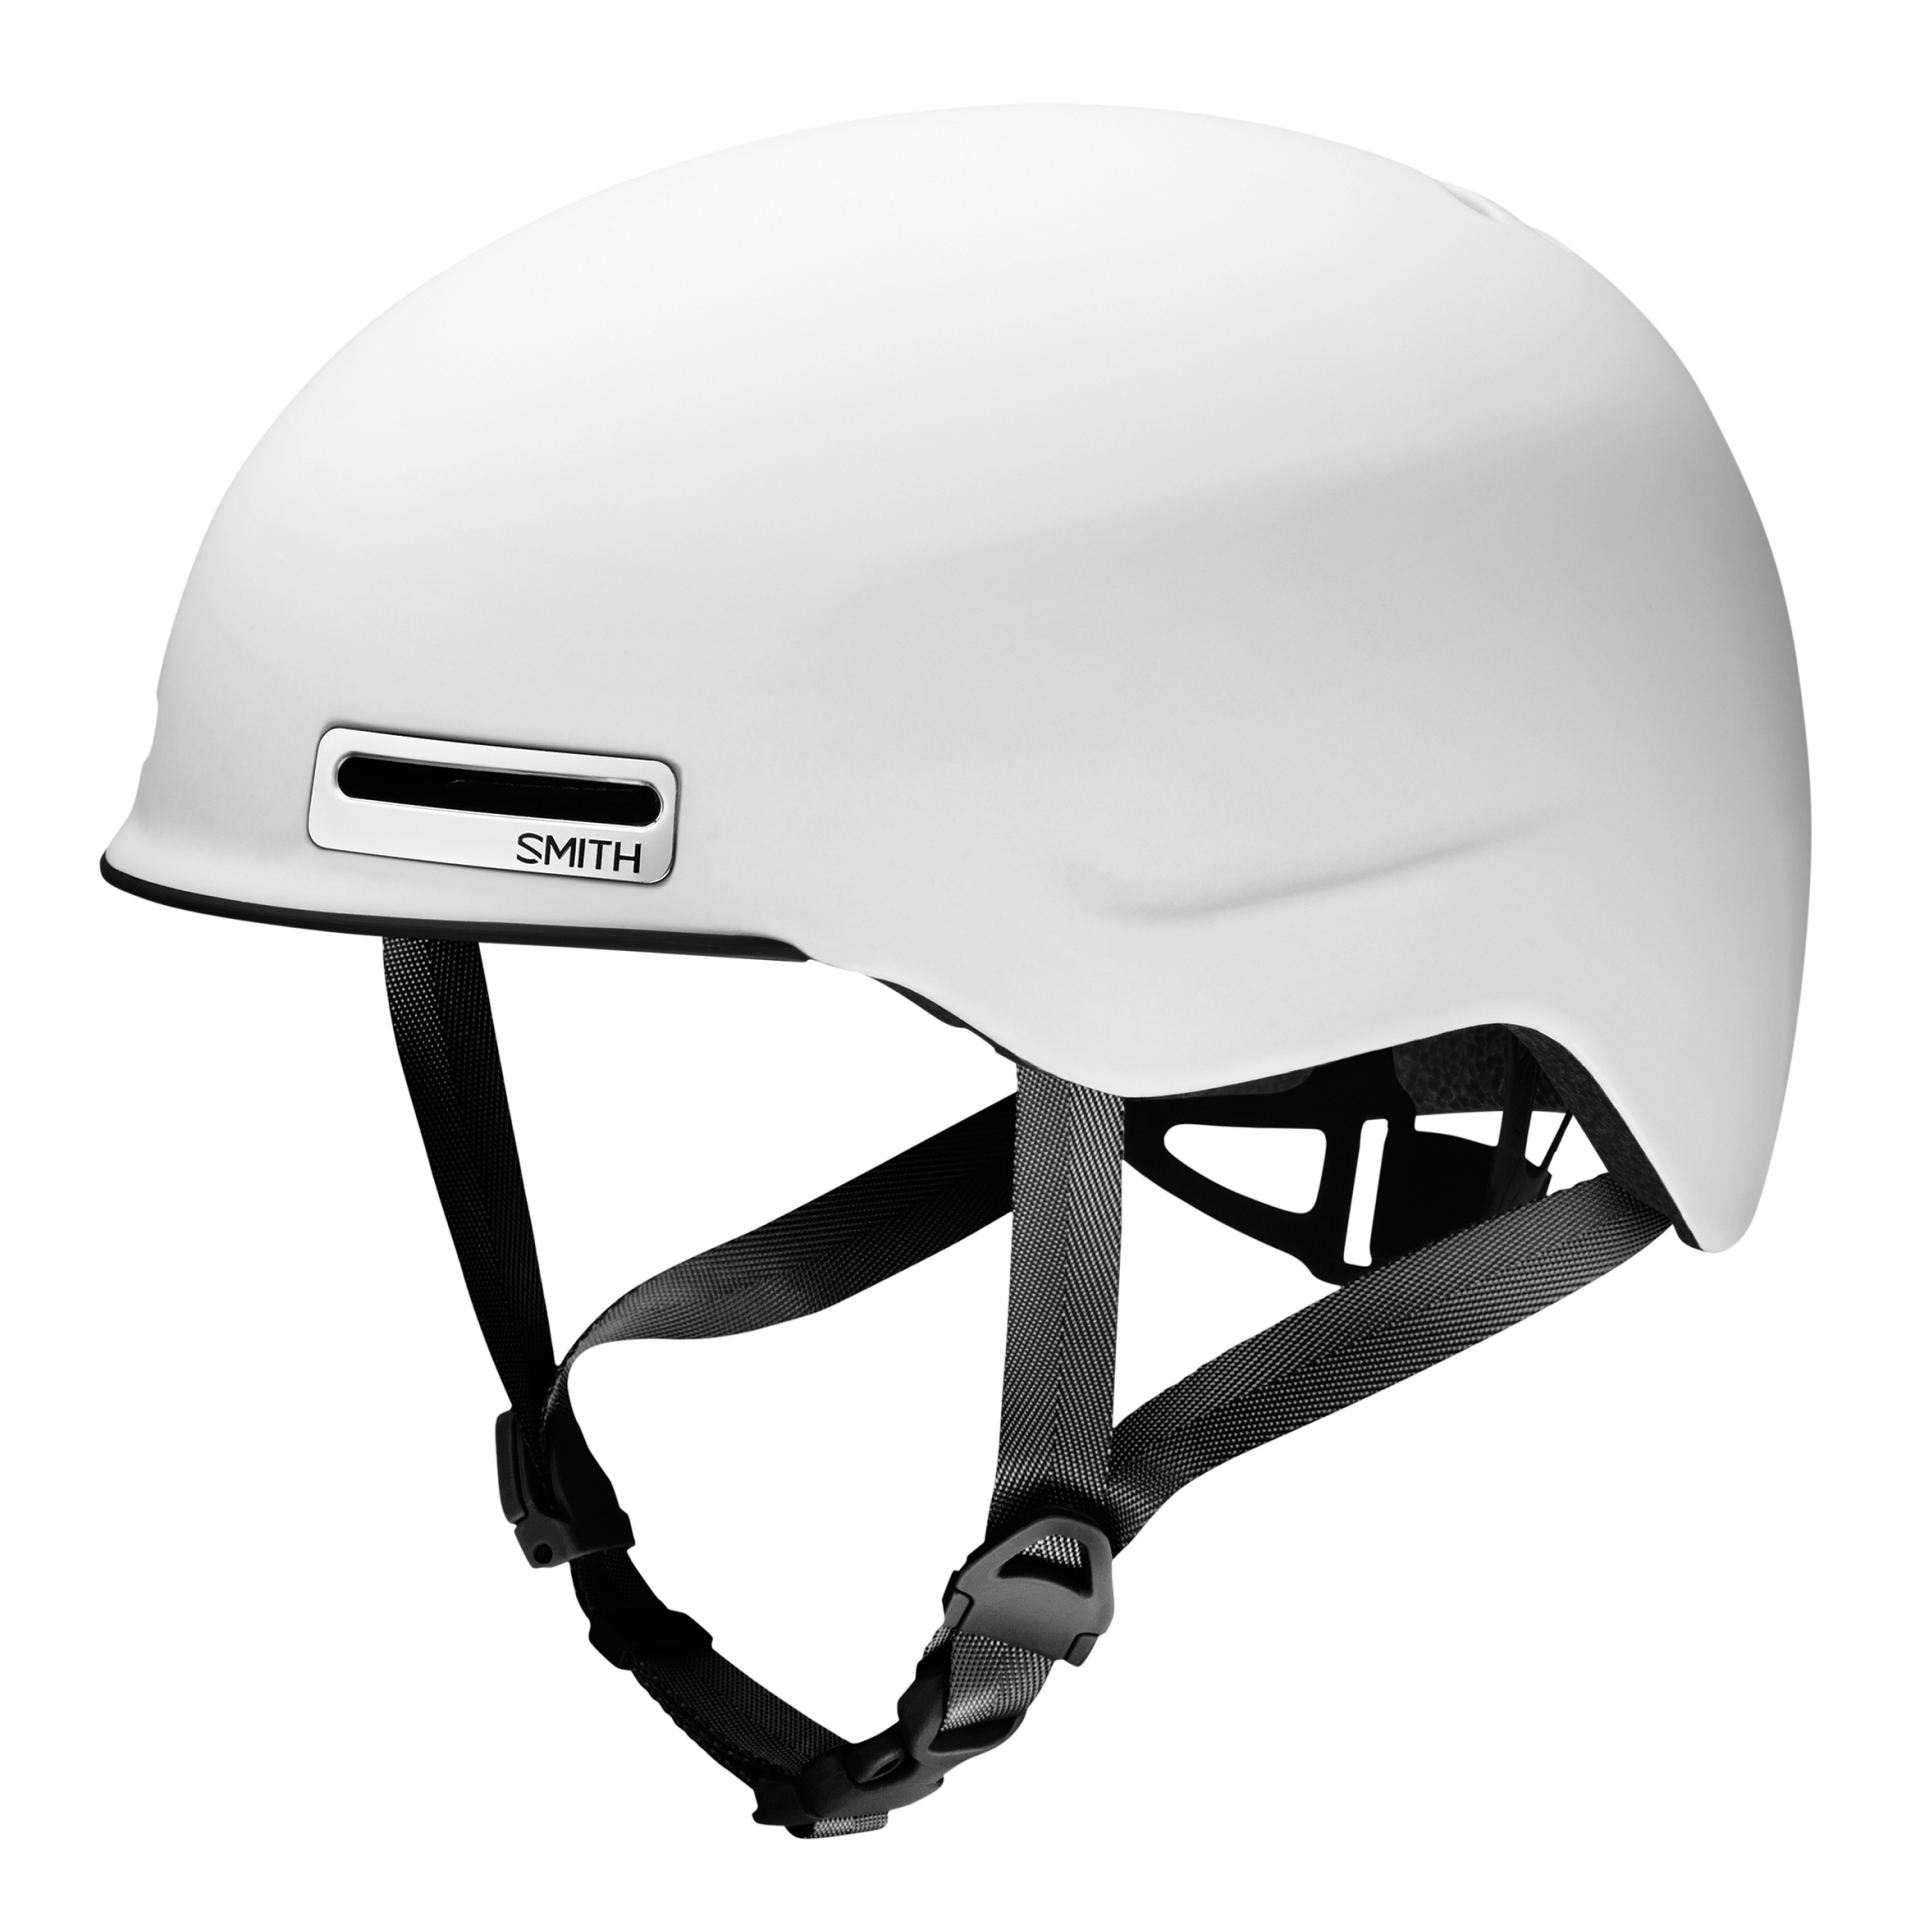 Casque Smith Maze Bike Mat Blanc - 51-55 cm